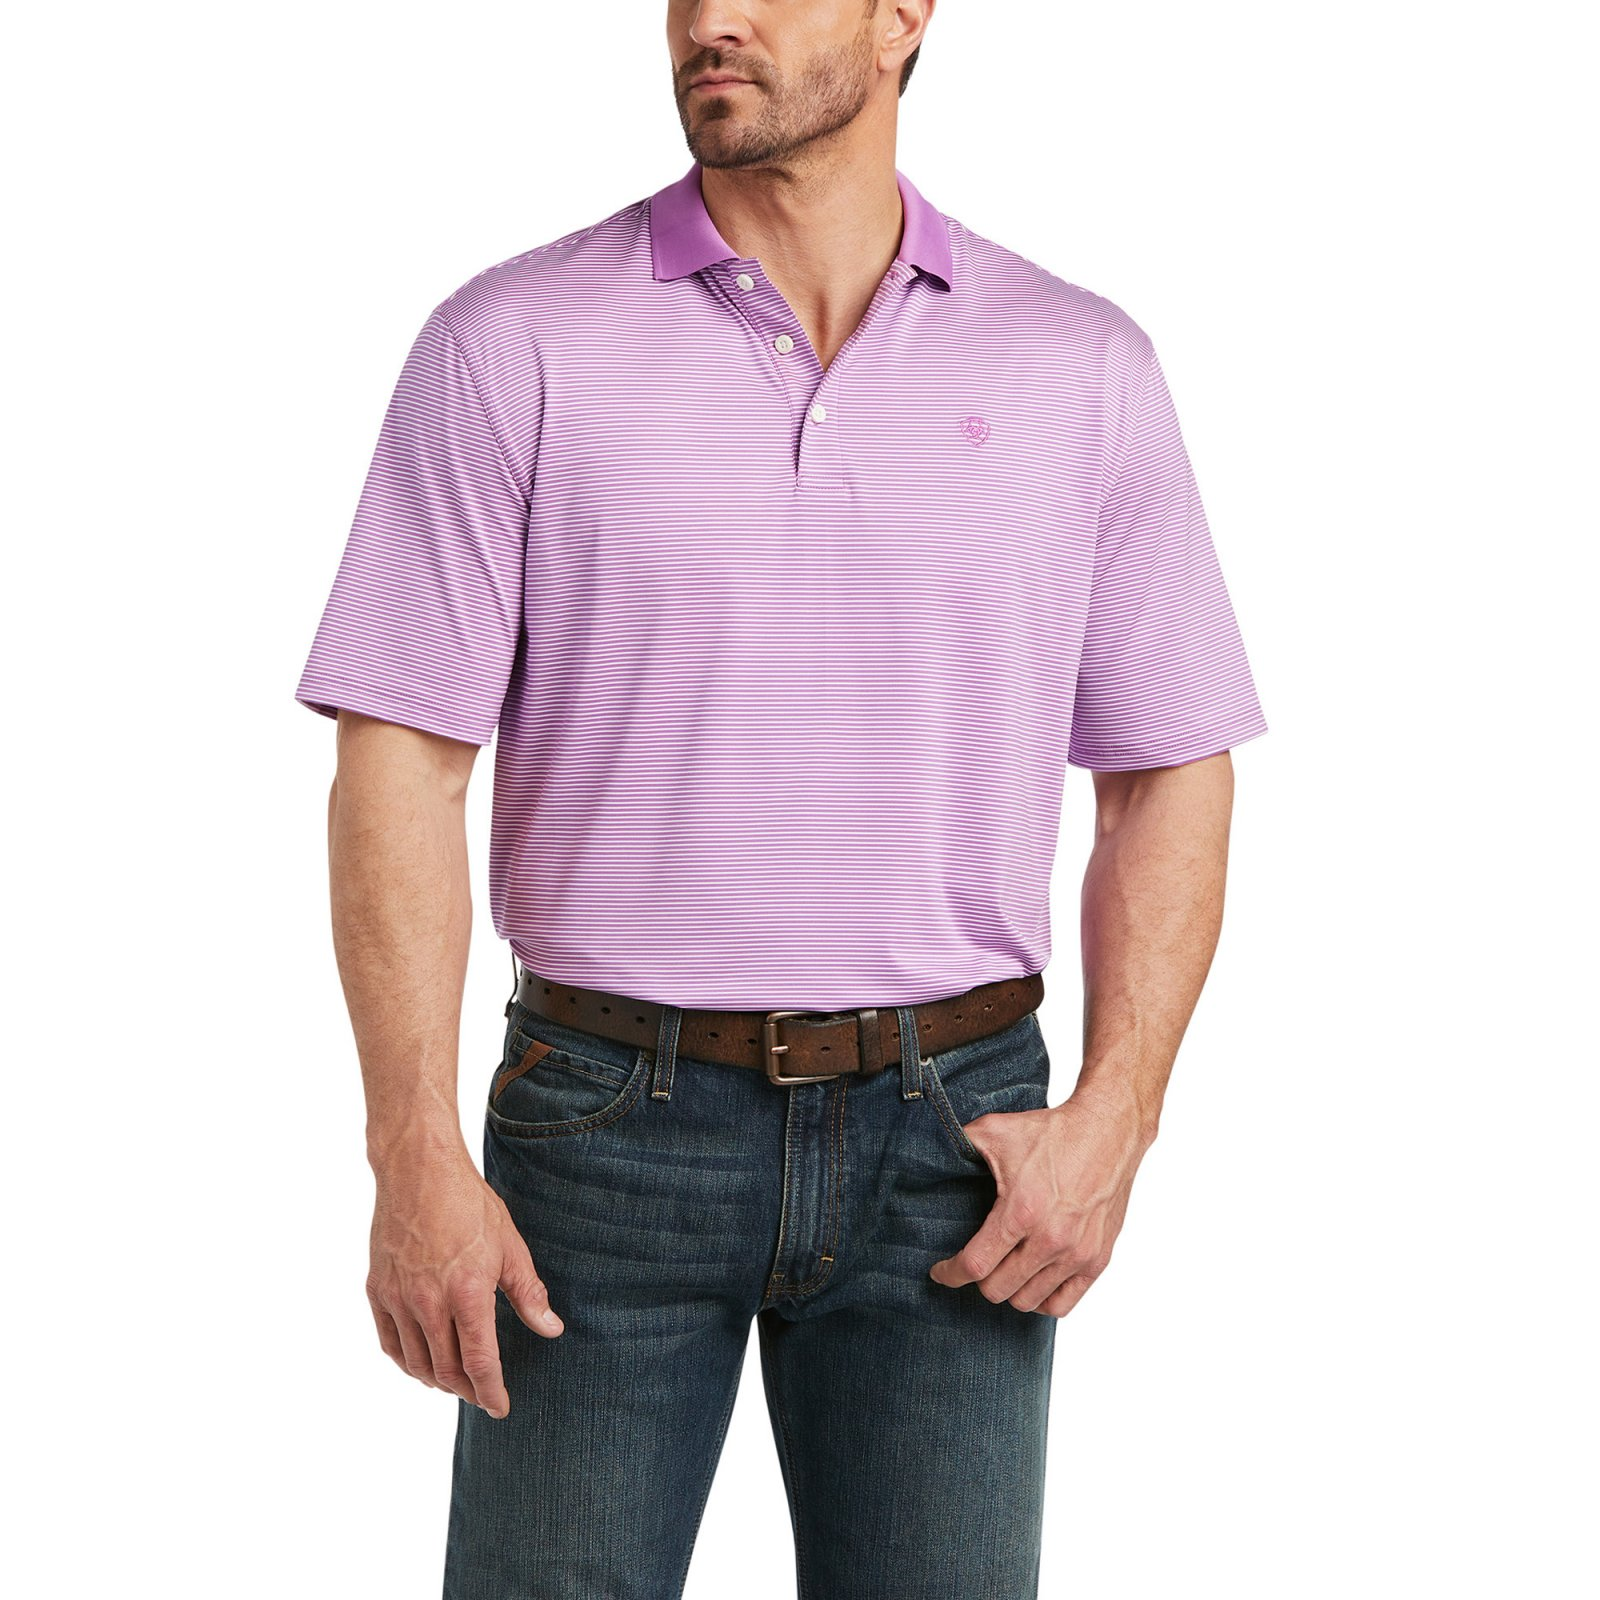 Micro Stripe Polo from Ariat